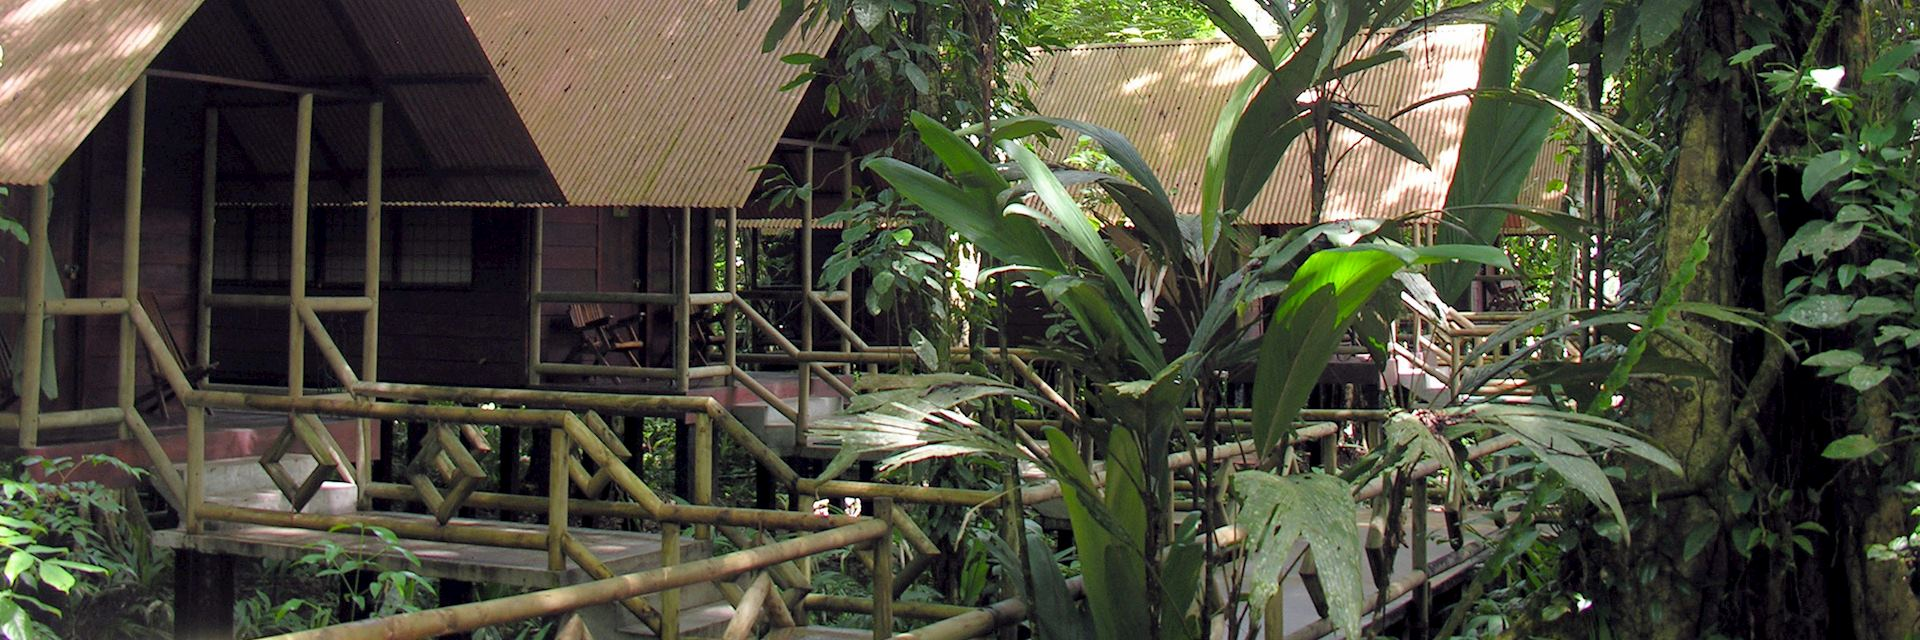 Evergreen Lodge, Tortuguero National Park